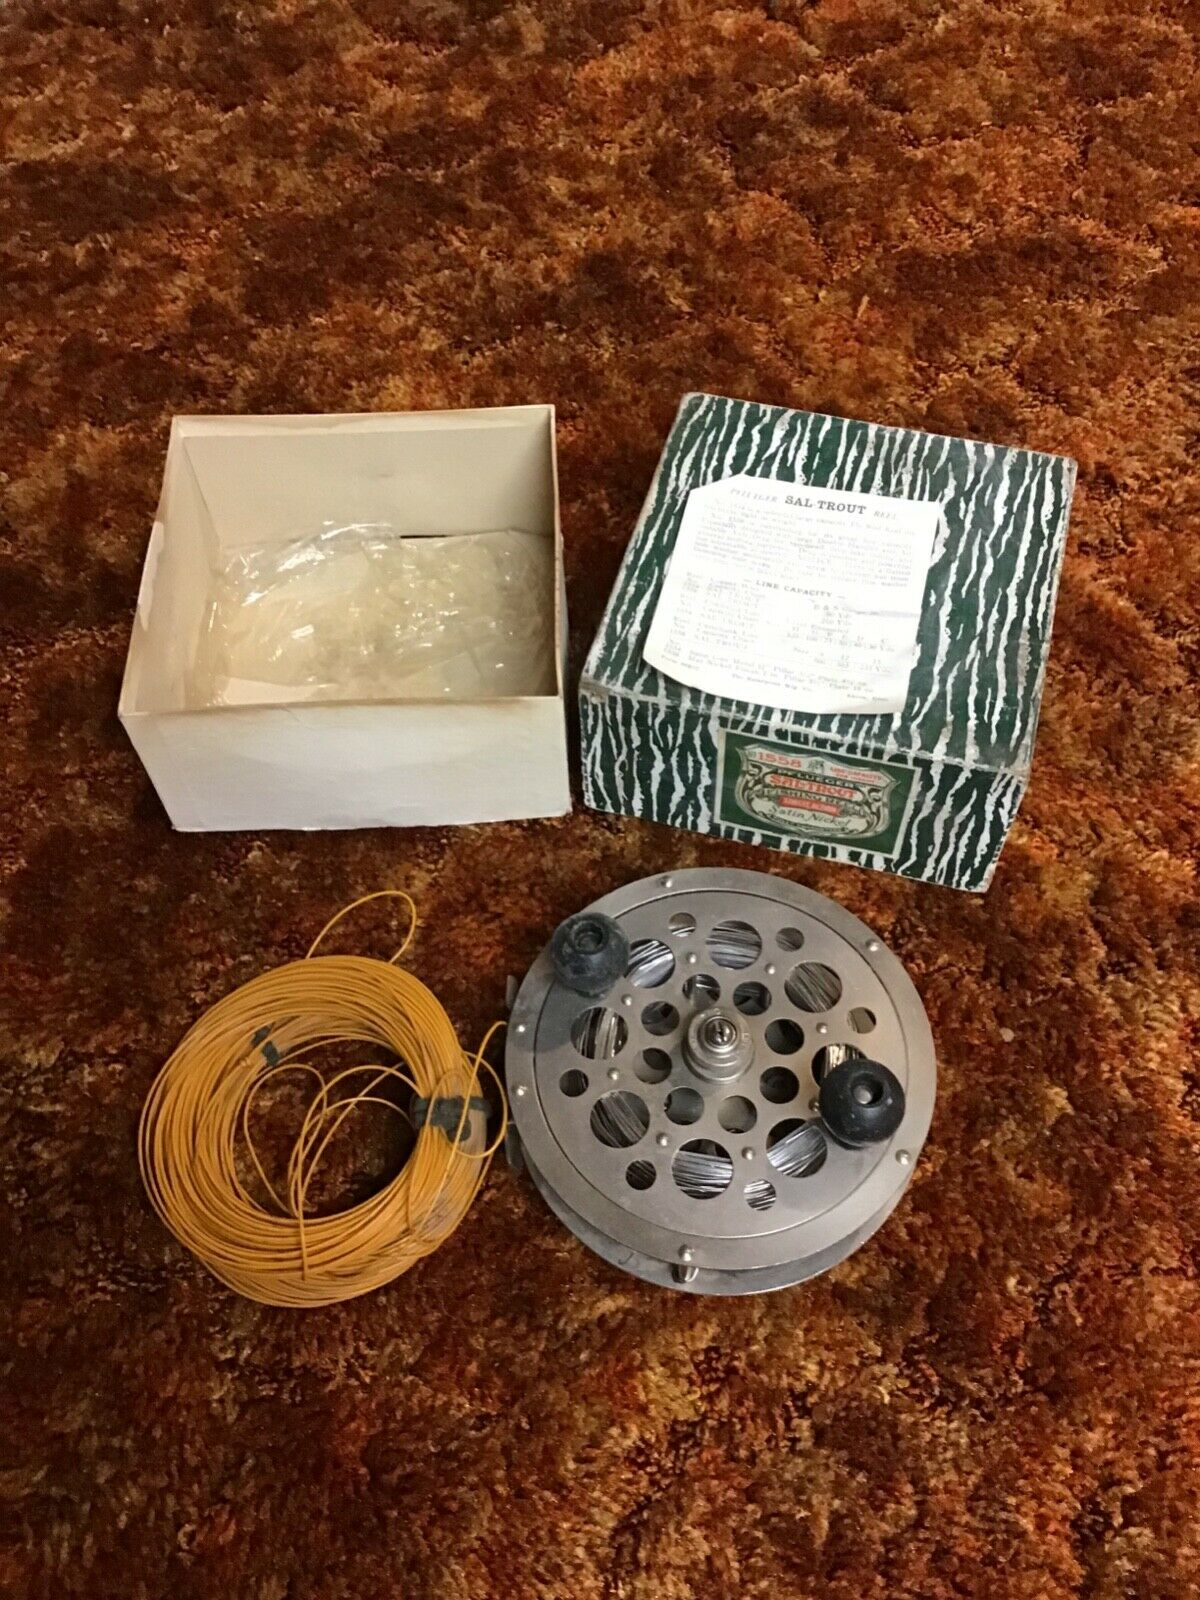 Vintage Pflueger Sal-Trout No.1558 Clean - With Original Box and Paperwork